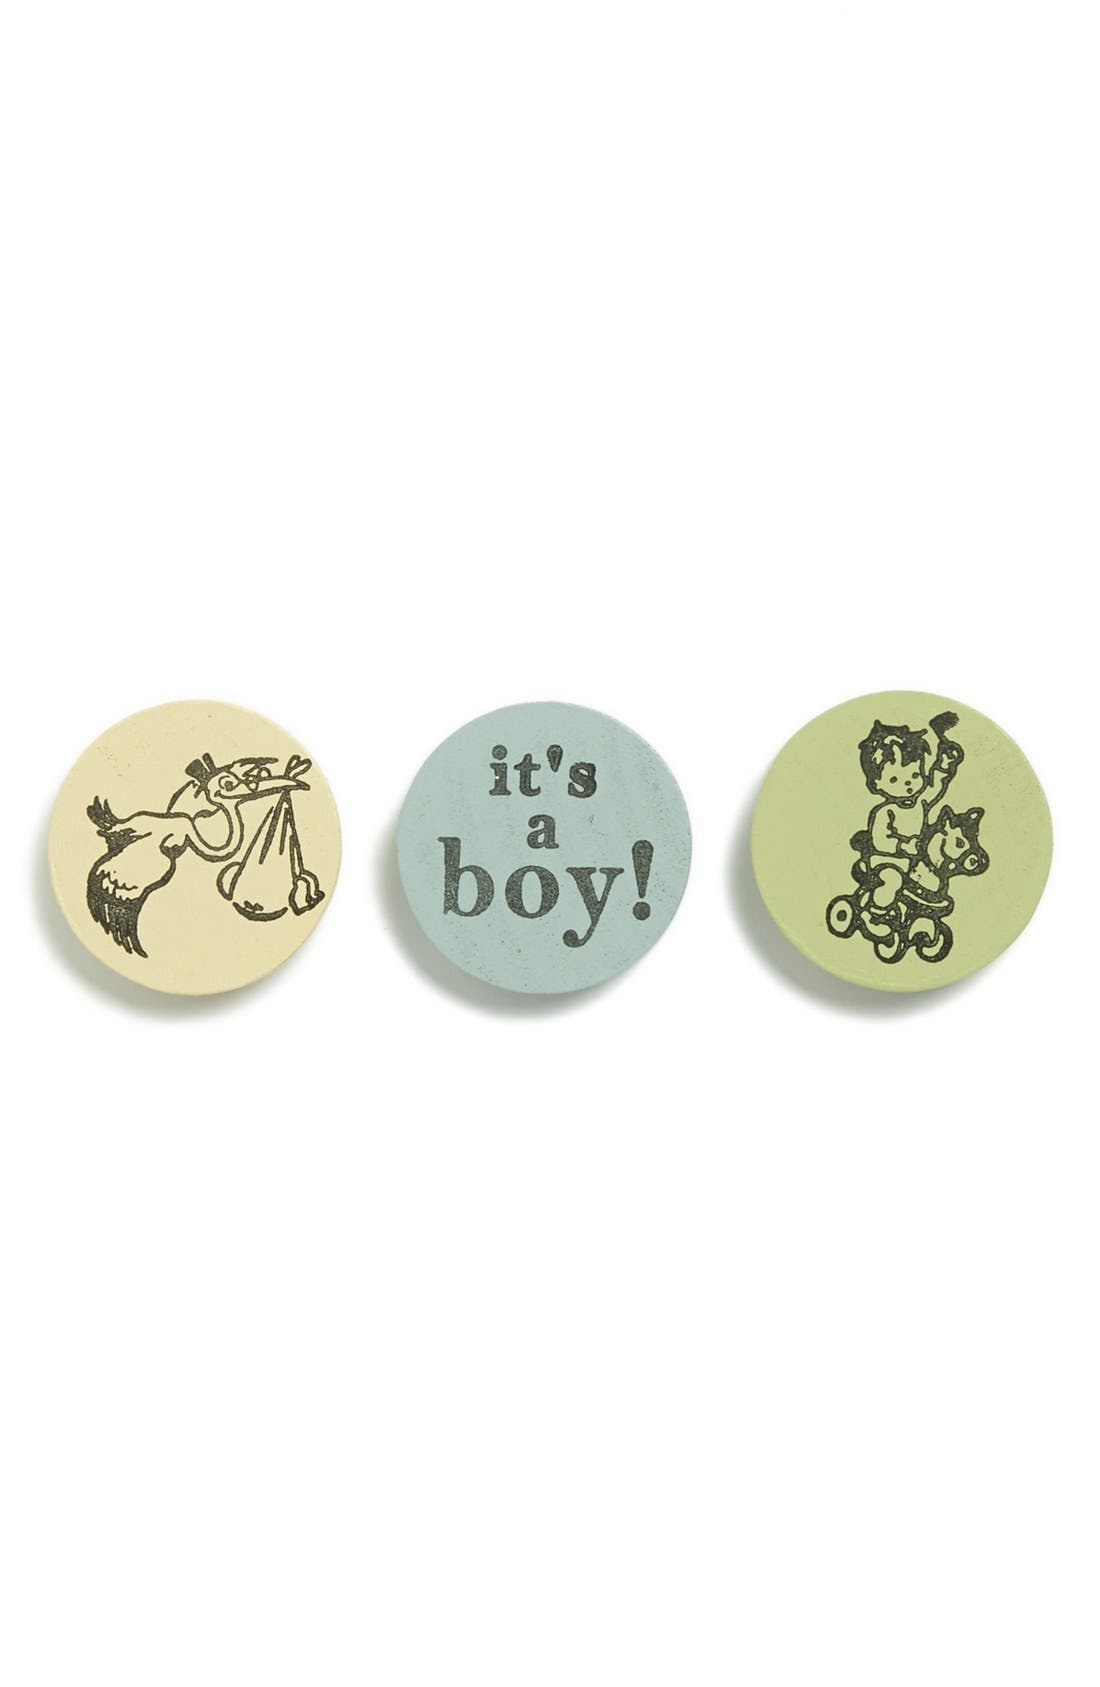 Main Image - Tree by Kerri Lee Occasion Magnets (Set of 3)